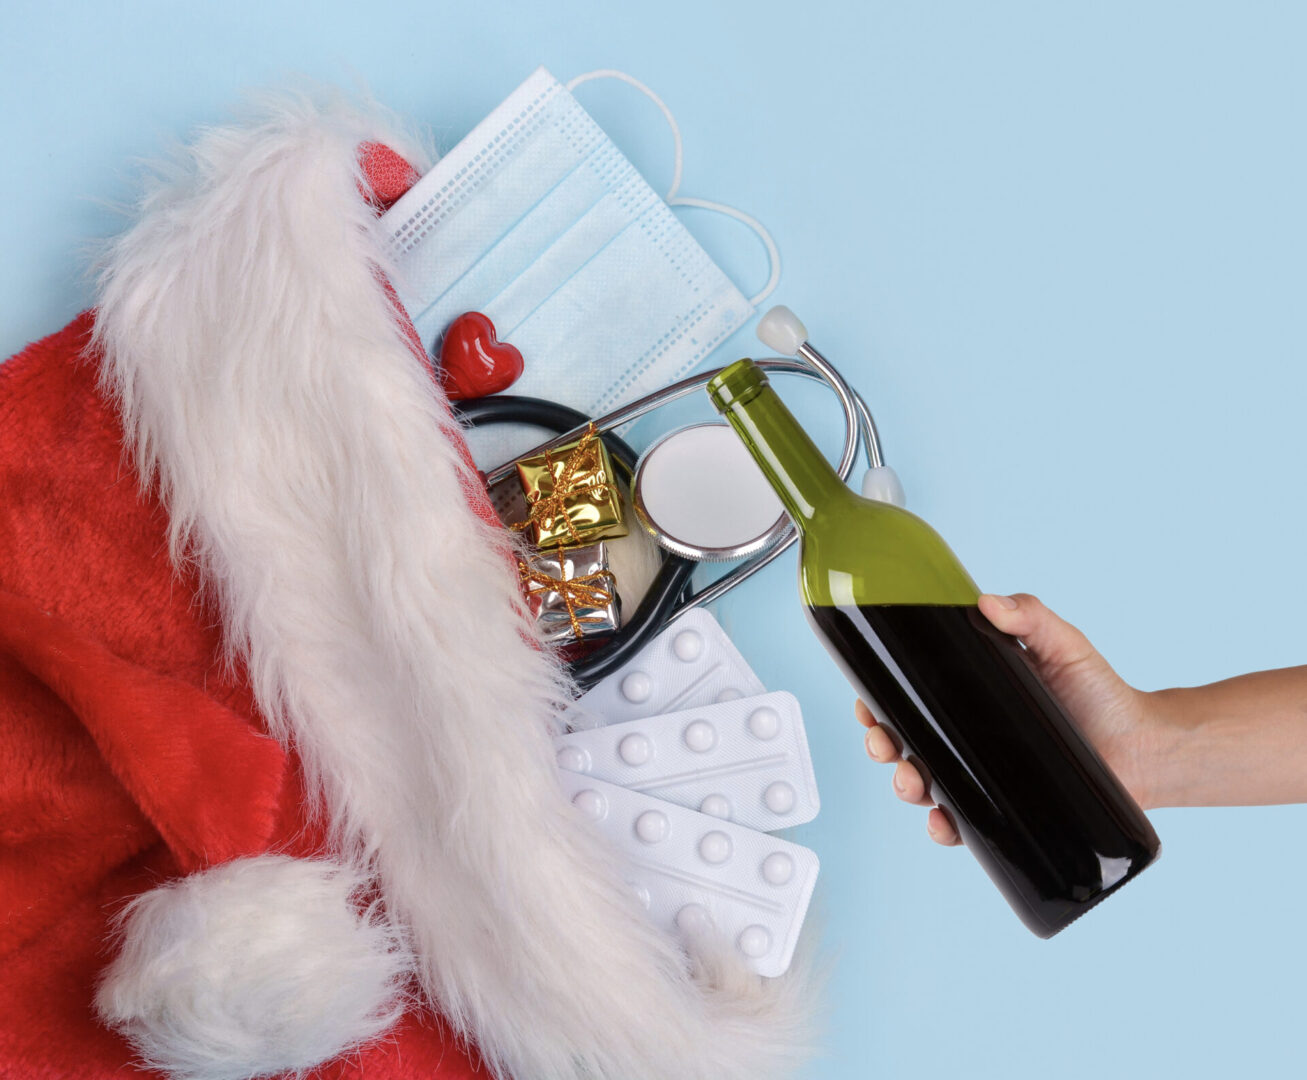 Christmas Stocking with stethescope, pills and a heart. Hand with wine bottle